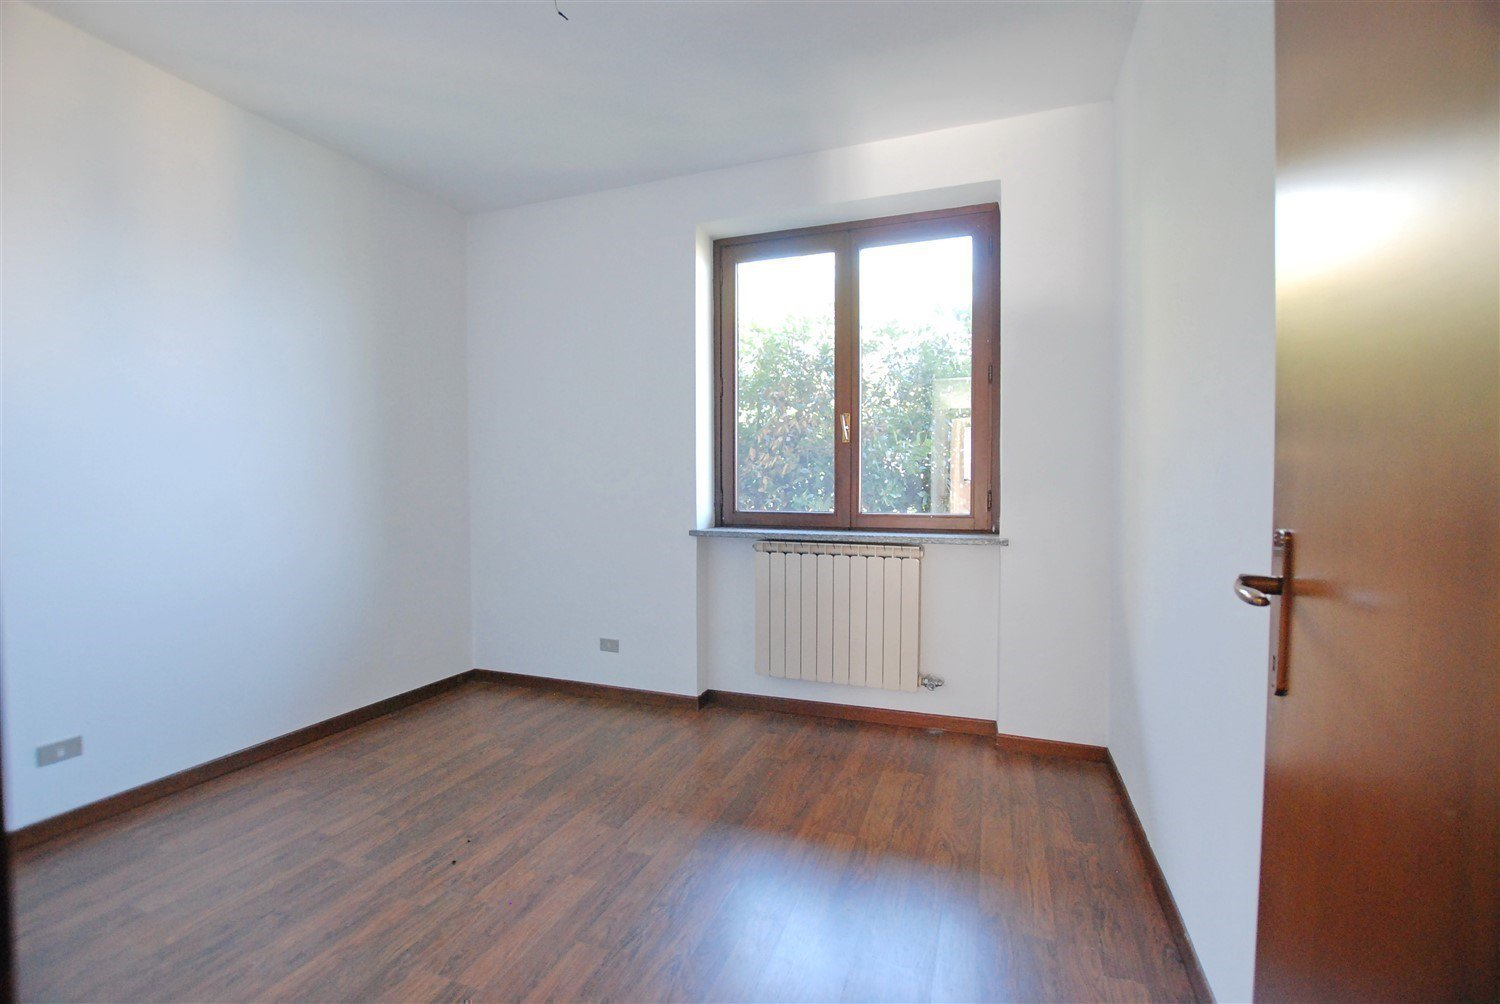 House for sale in Belgirate - room